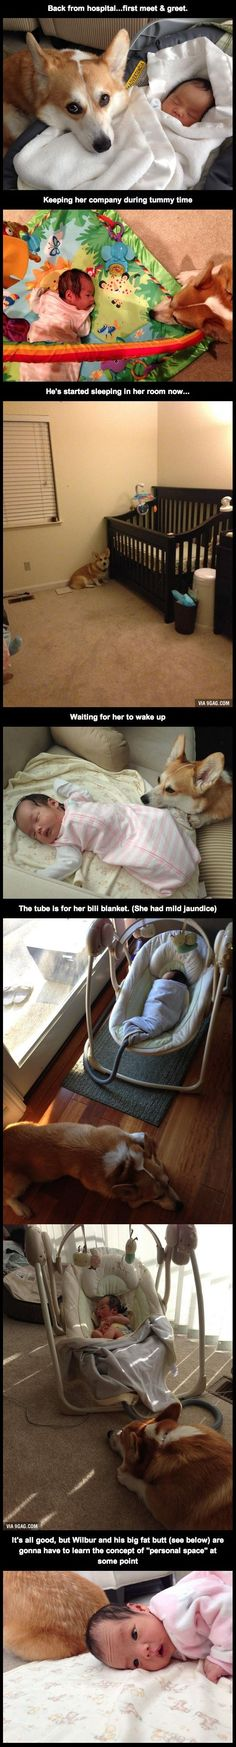 This girl was born three weeks ago. The corgi's treating her like his new BFF. ADORABLE